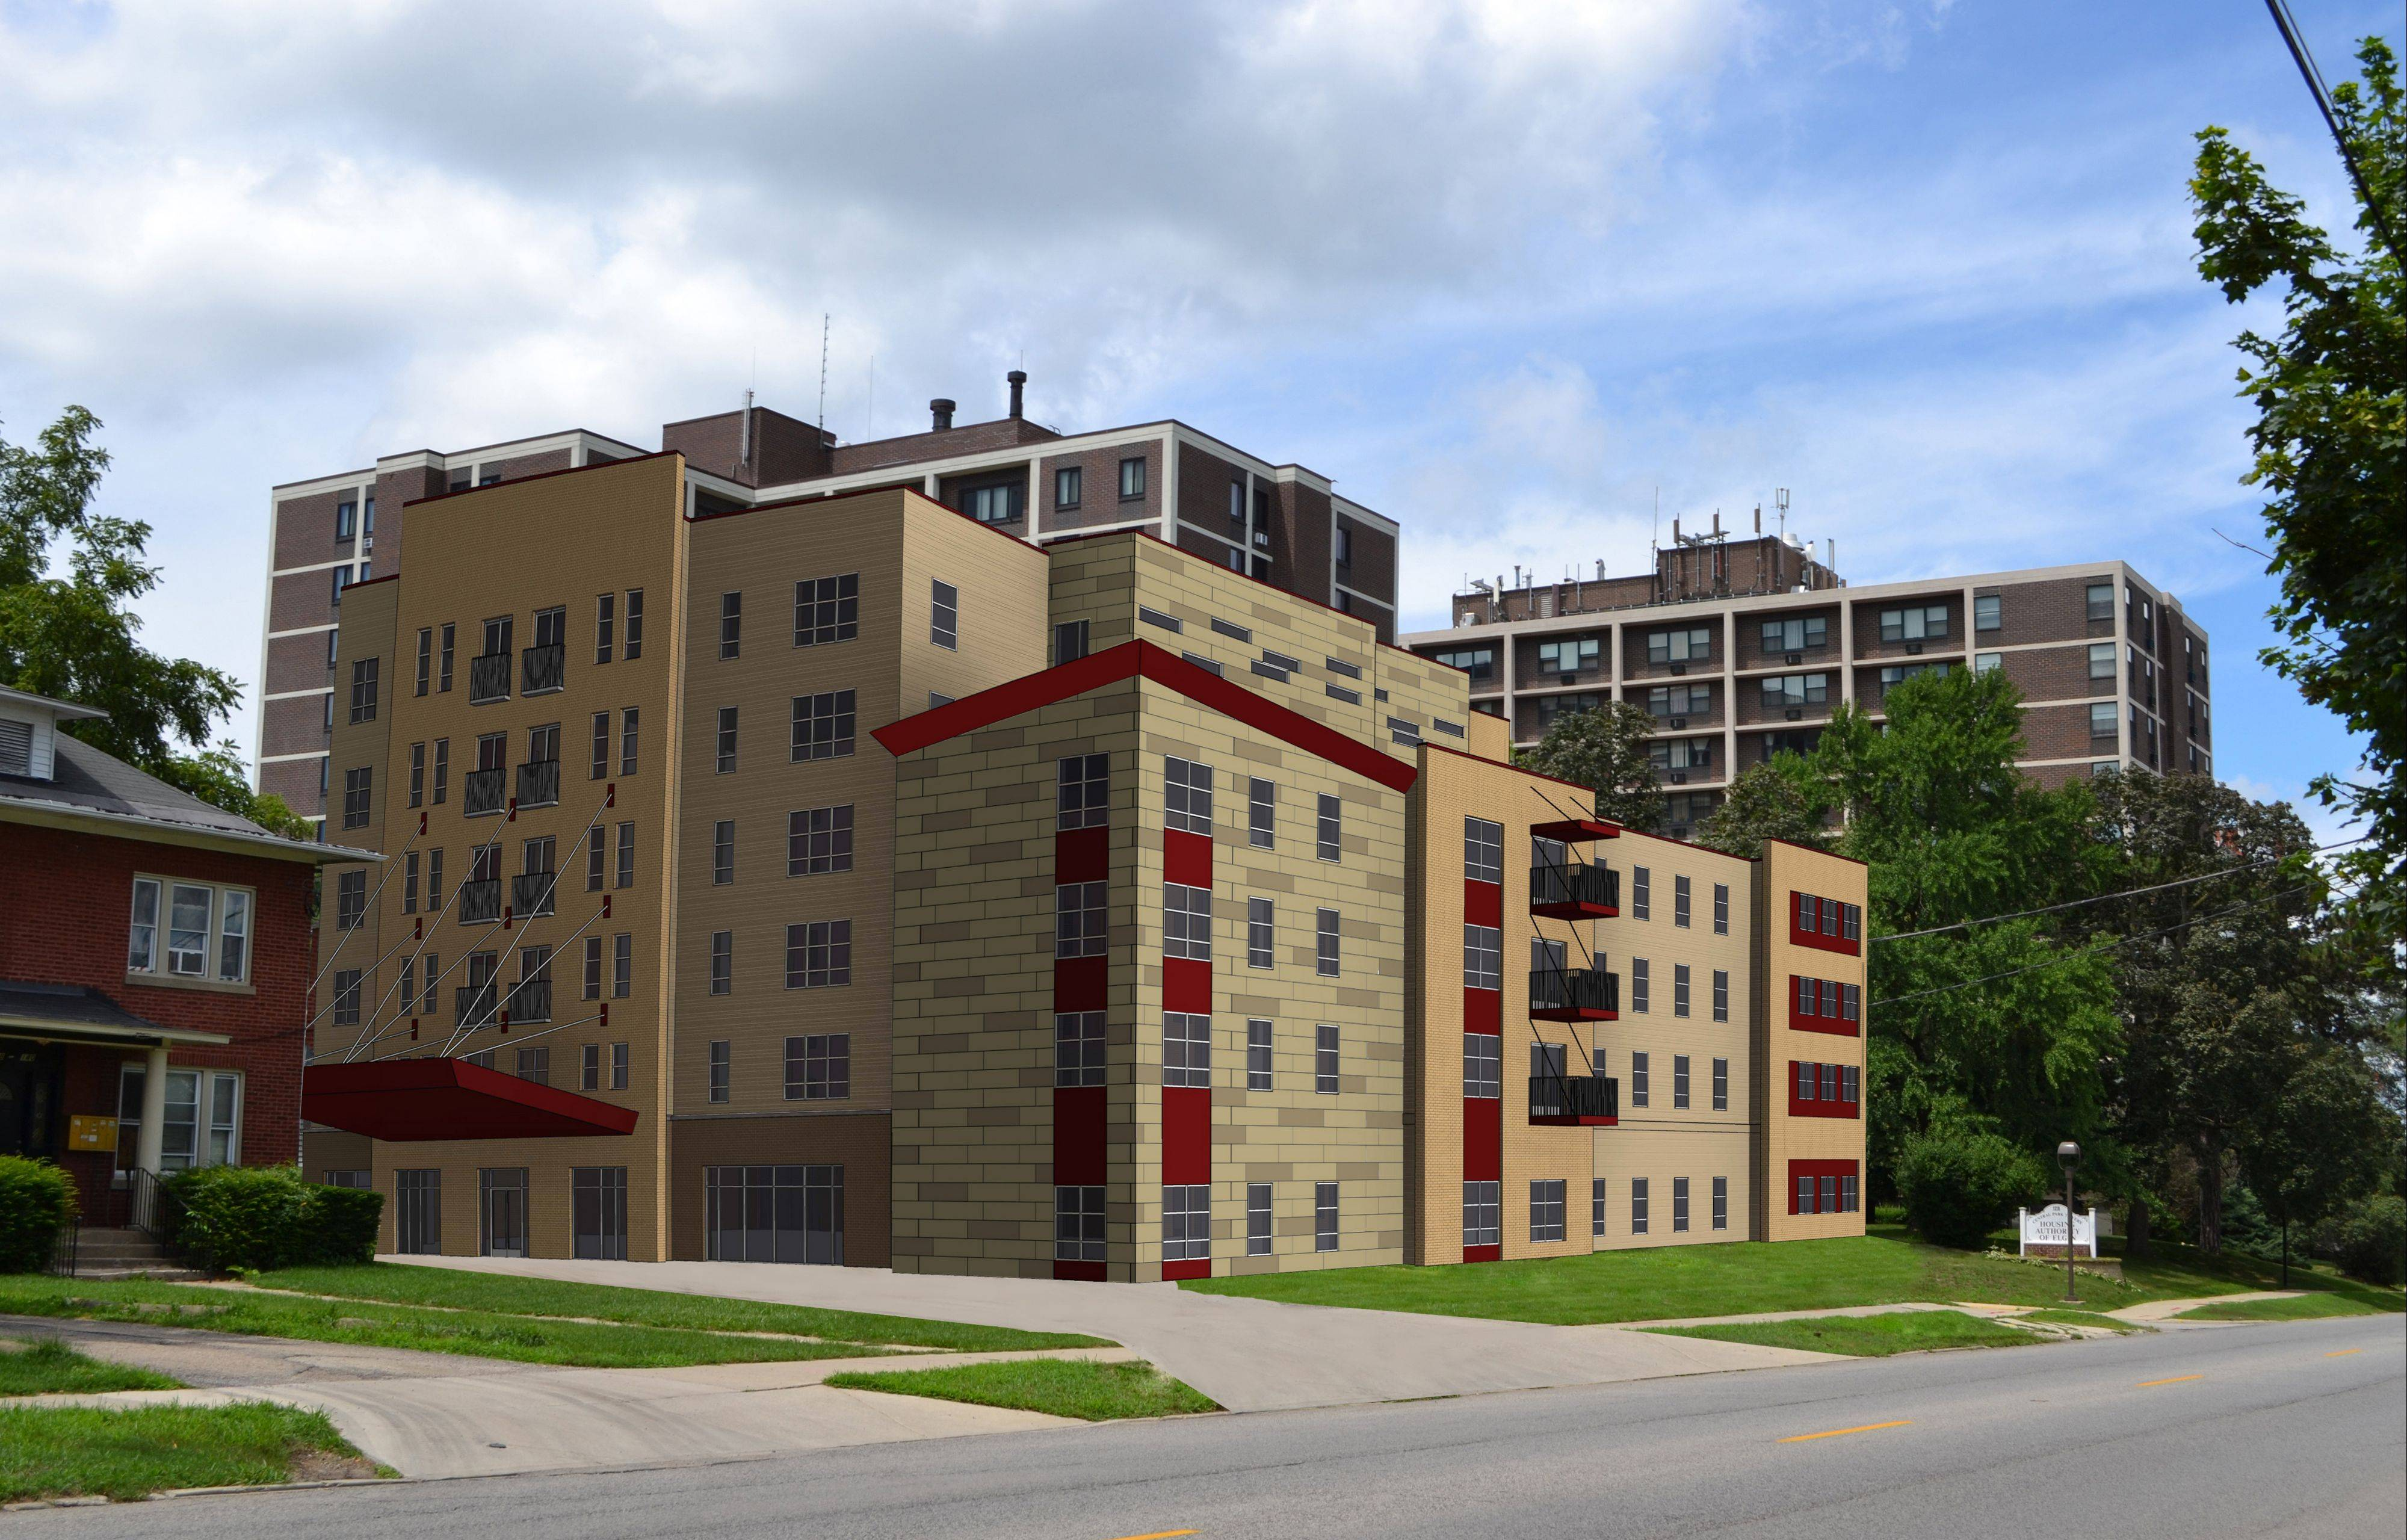 This rendering by Excel Engineering shows a proposed six-story building that the Housing Authority of Elgin wants to build at 132 S. State St. After getting feedback about the initial design, the building's color scheme has been toned down.